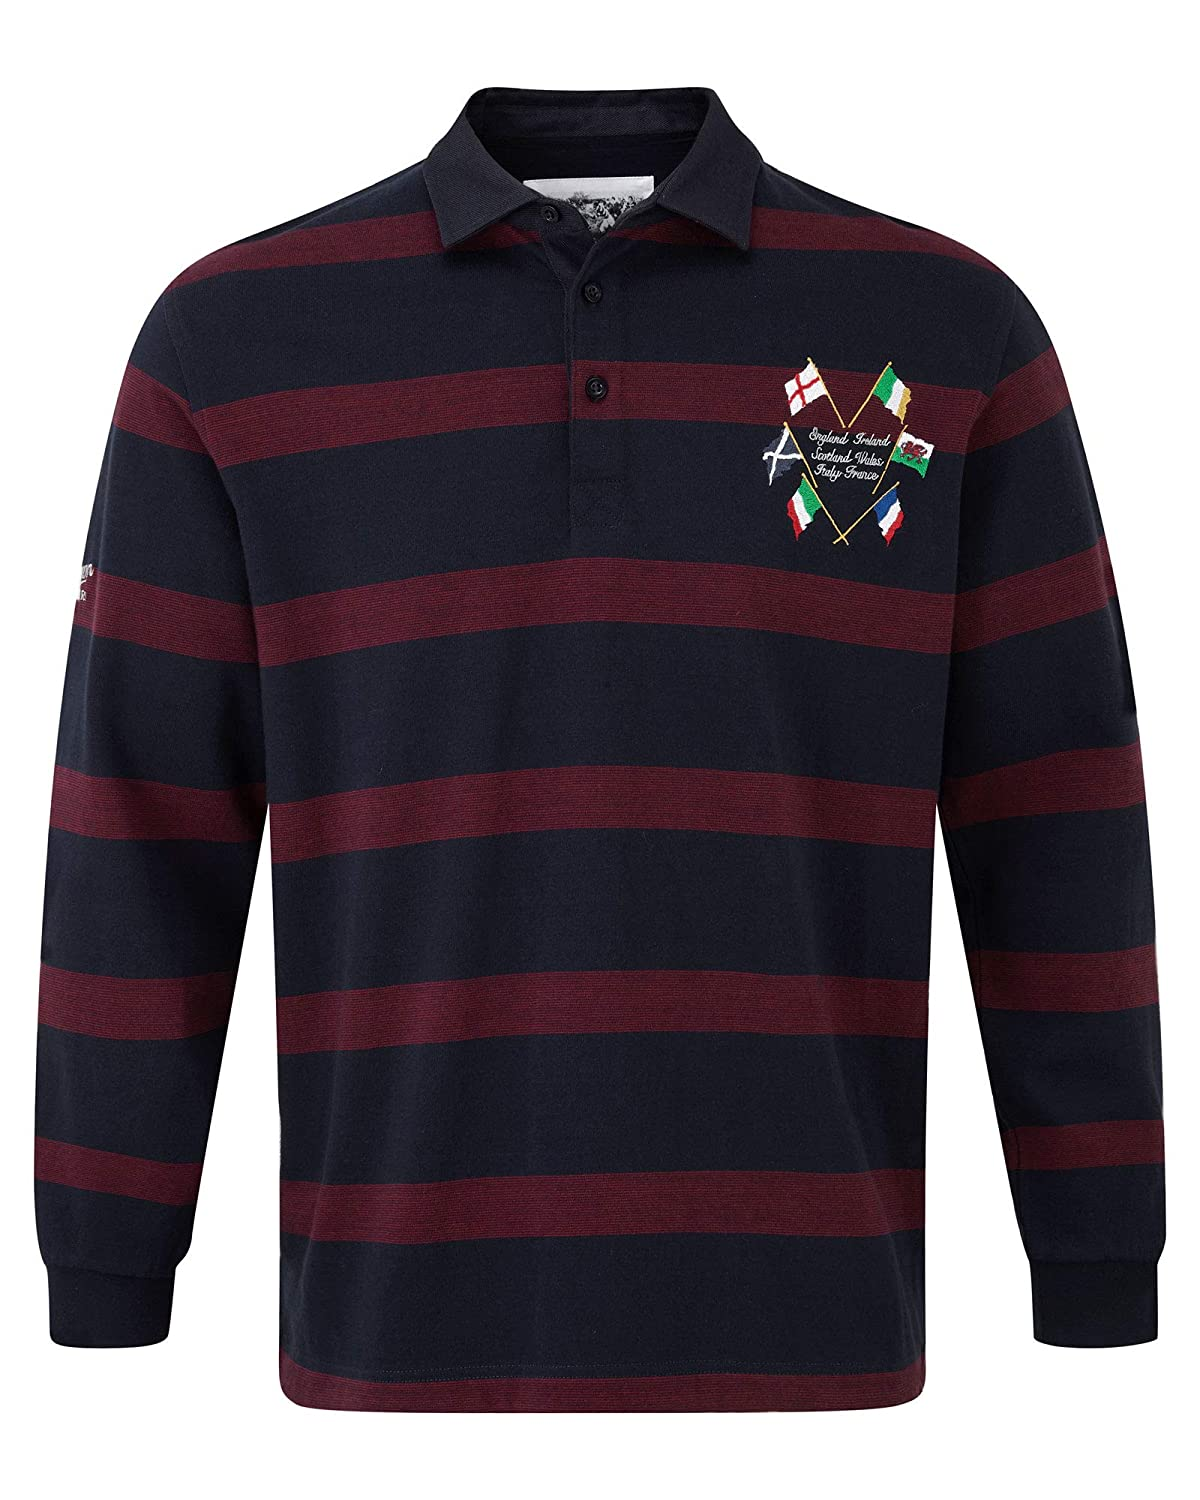 d75d030a7cc Pure Cotton Rugby Shirts Uk – EDGE Engineering and Consulting Limited